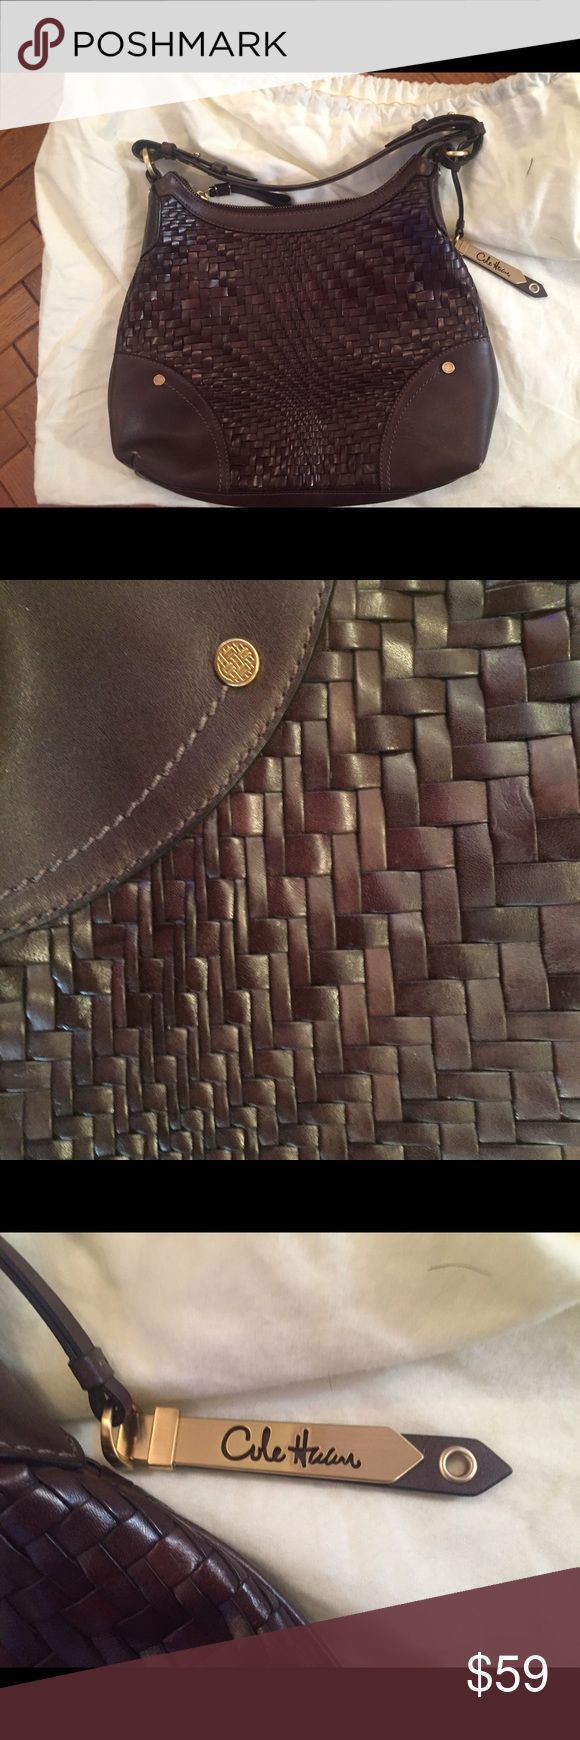 """Cole Haan Brown Leather Basket Weave Handbag Cole Haan brown leather basket weave handbag that I have not used.  You can tell by the pristine nature of the lining & the picture that shows the plastic wasn't even removed from the hardware on the center pocket zipper!  Was a sample model in the store.  As such, three of the corners have brown color rubbed off the leather (see pic) but the leather is still perfect so only needs to be polished on those corners.  13"""" across at widest/11"""" high at…"""